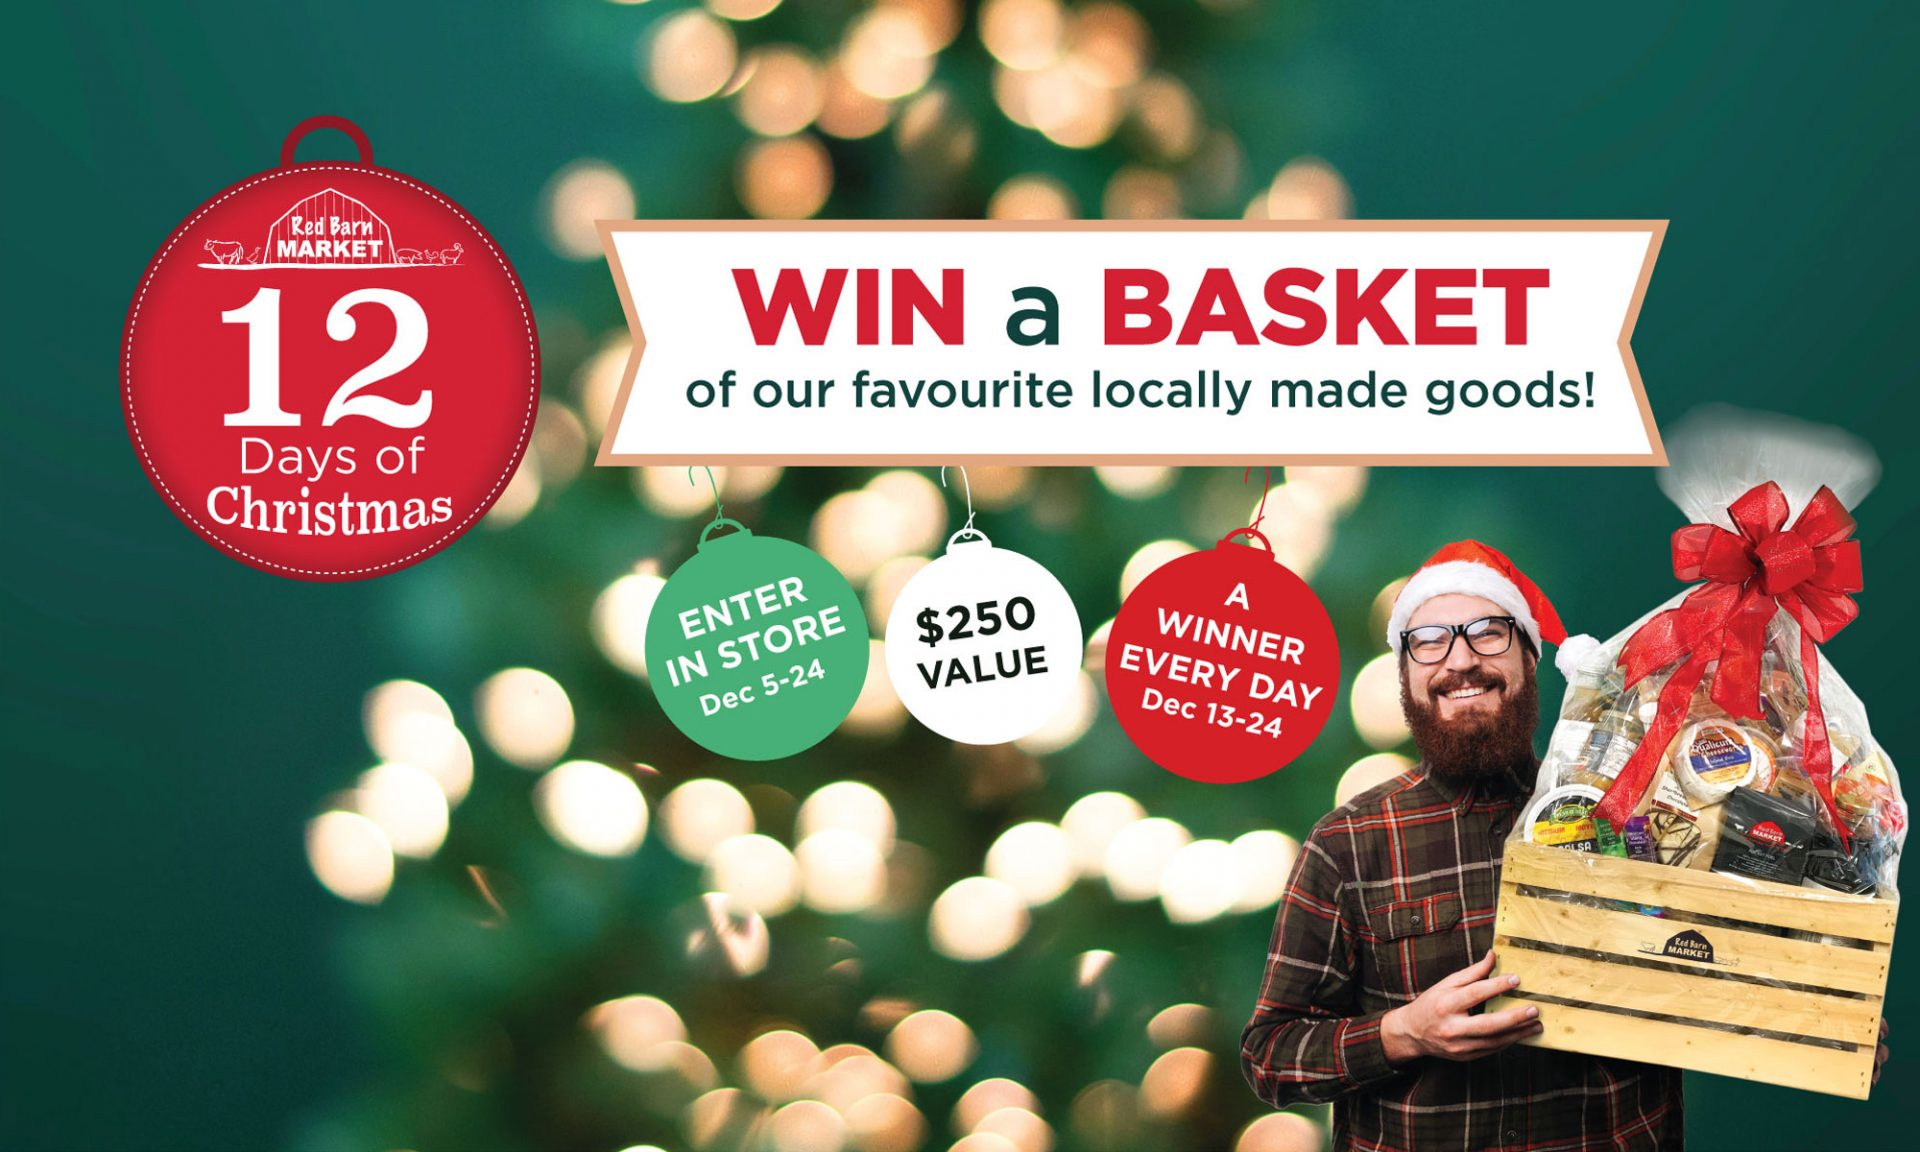 12 Days of Christmas Enter to WIN a basket of our favourite holiday goods. A new winner every day December 13-24!